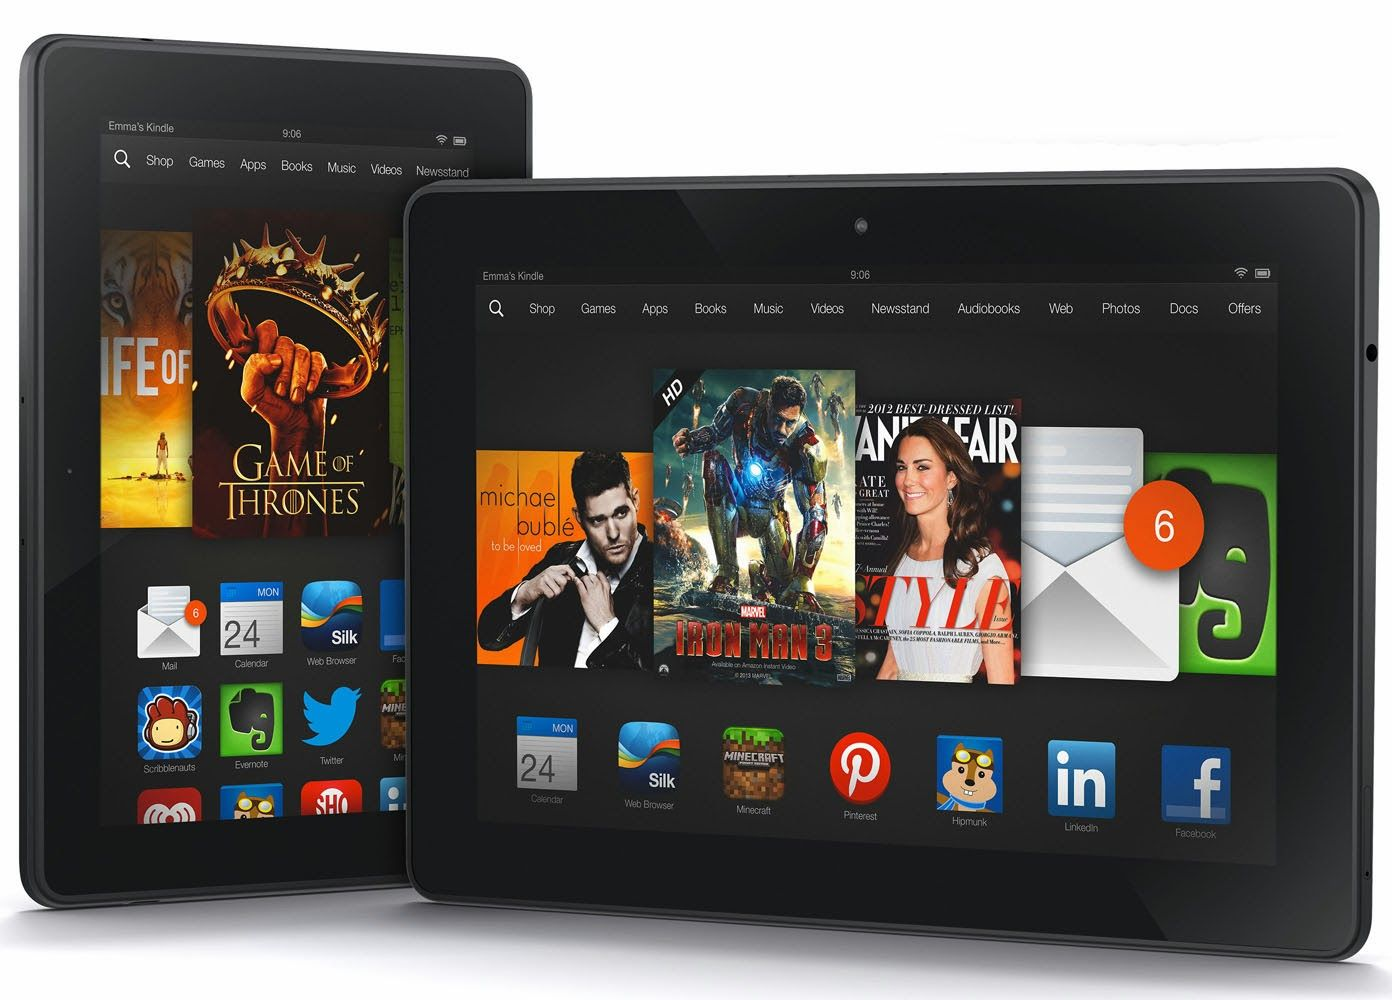 Amazon announces new Kindle Fire HDX 7 and 8.9 alongside refreshed Kindle Fire HD